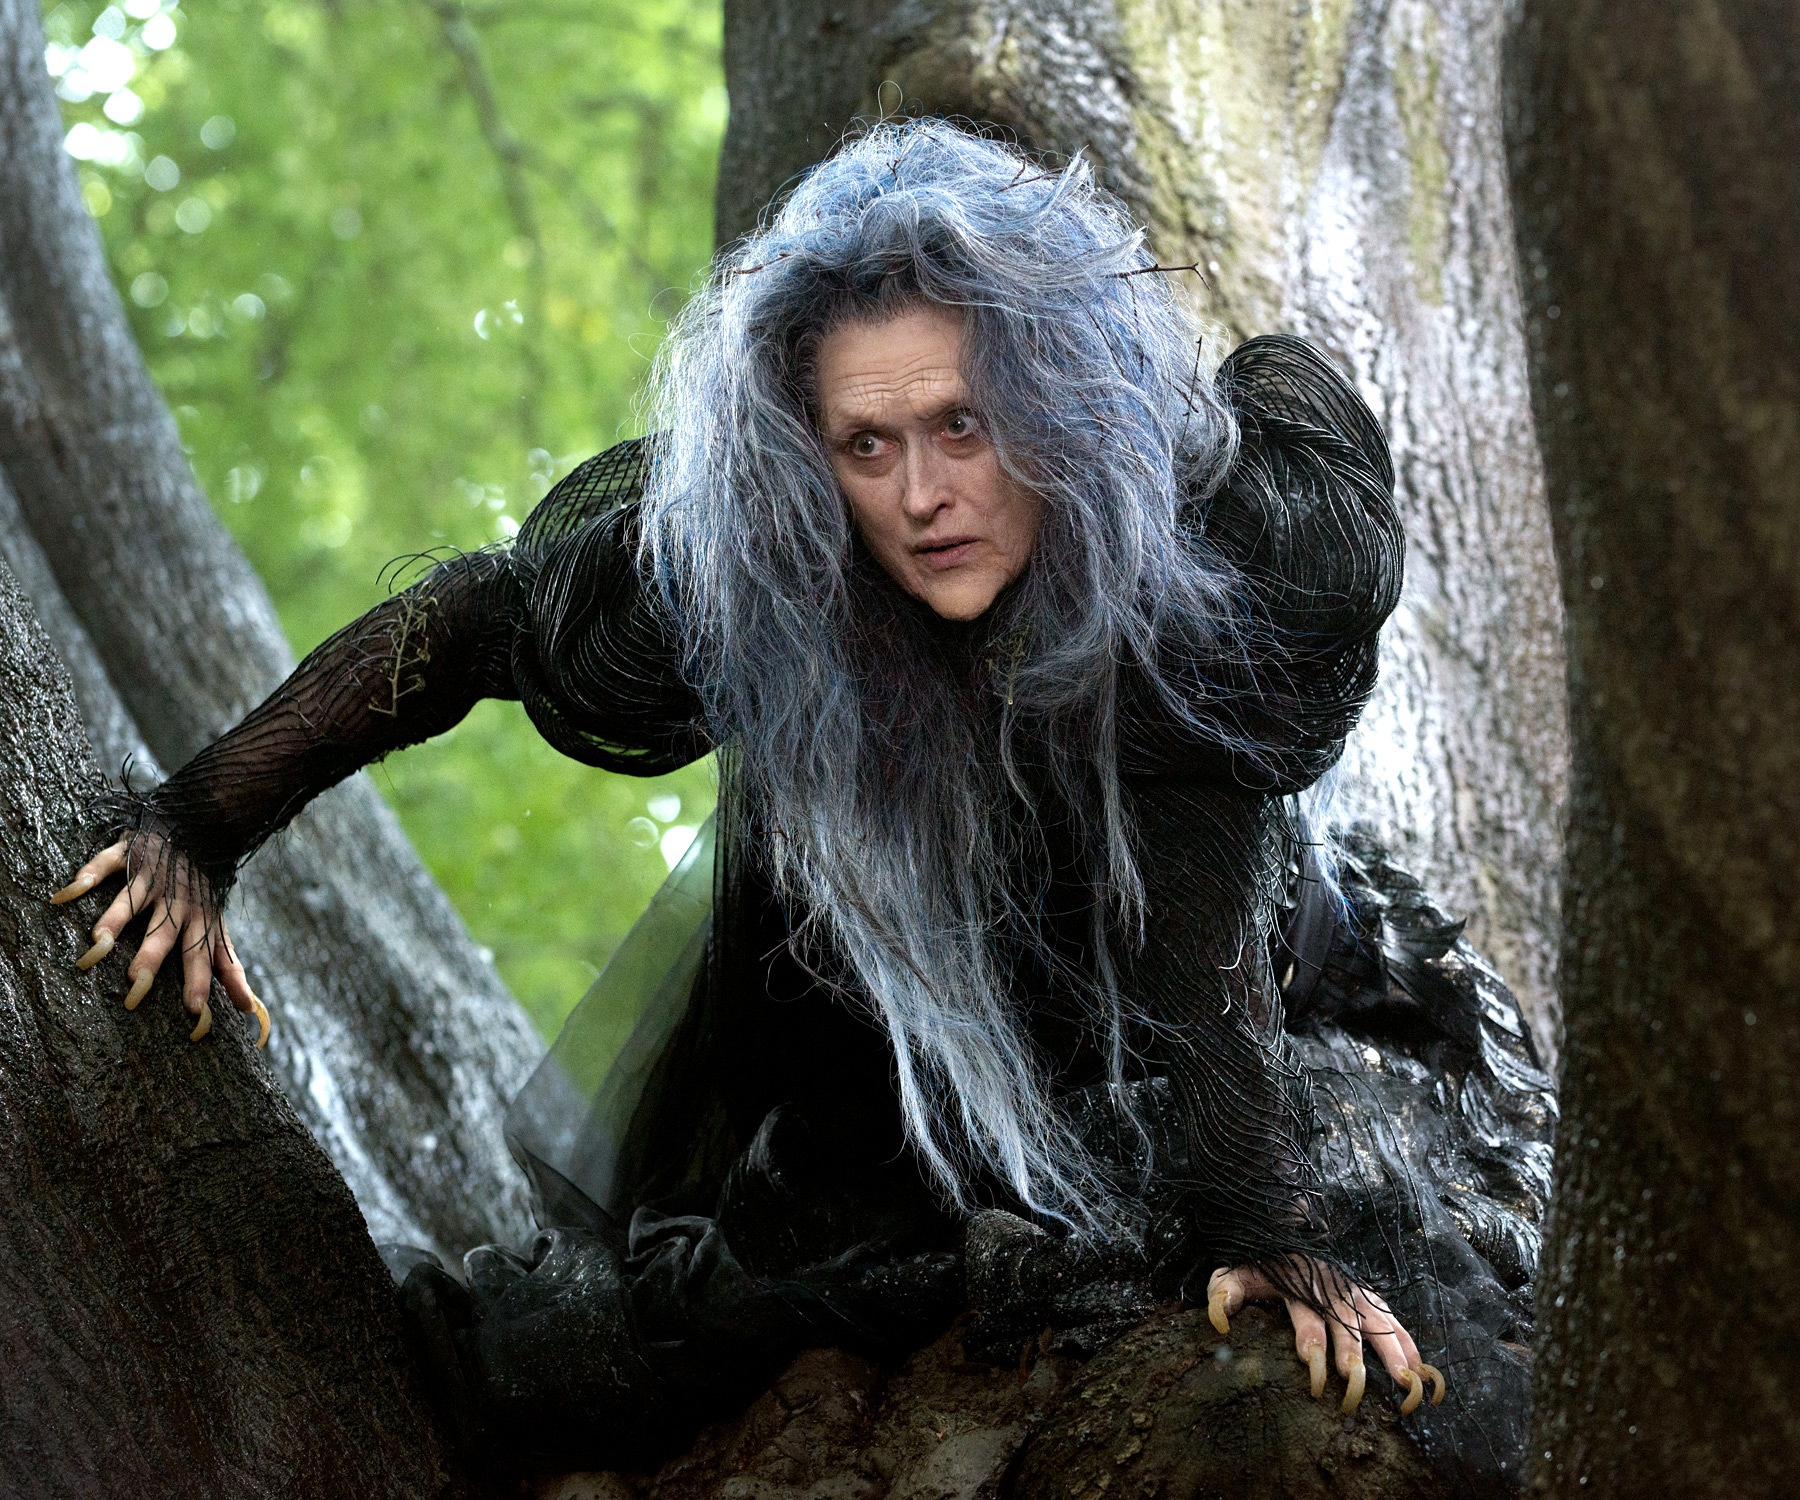 Meryl Streep as The Witch Into the Woods Picture image